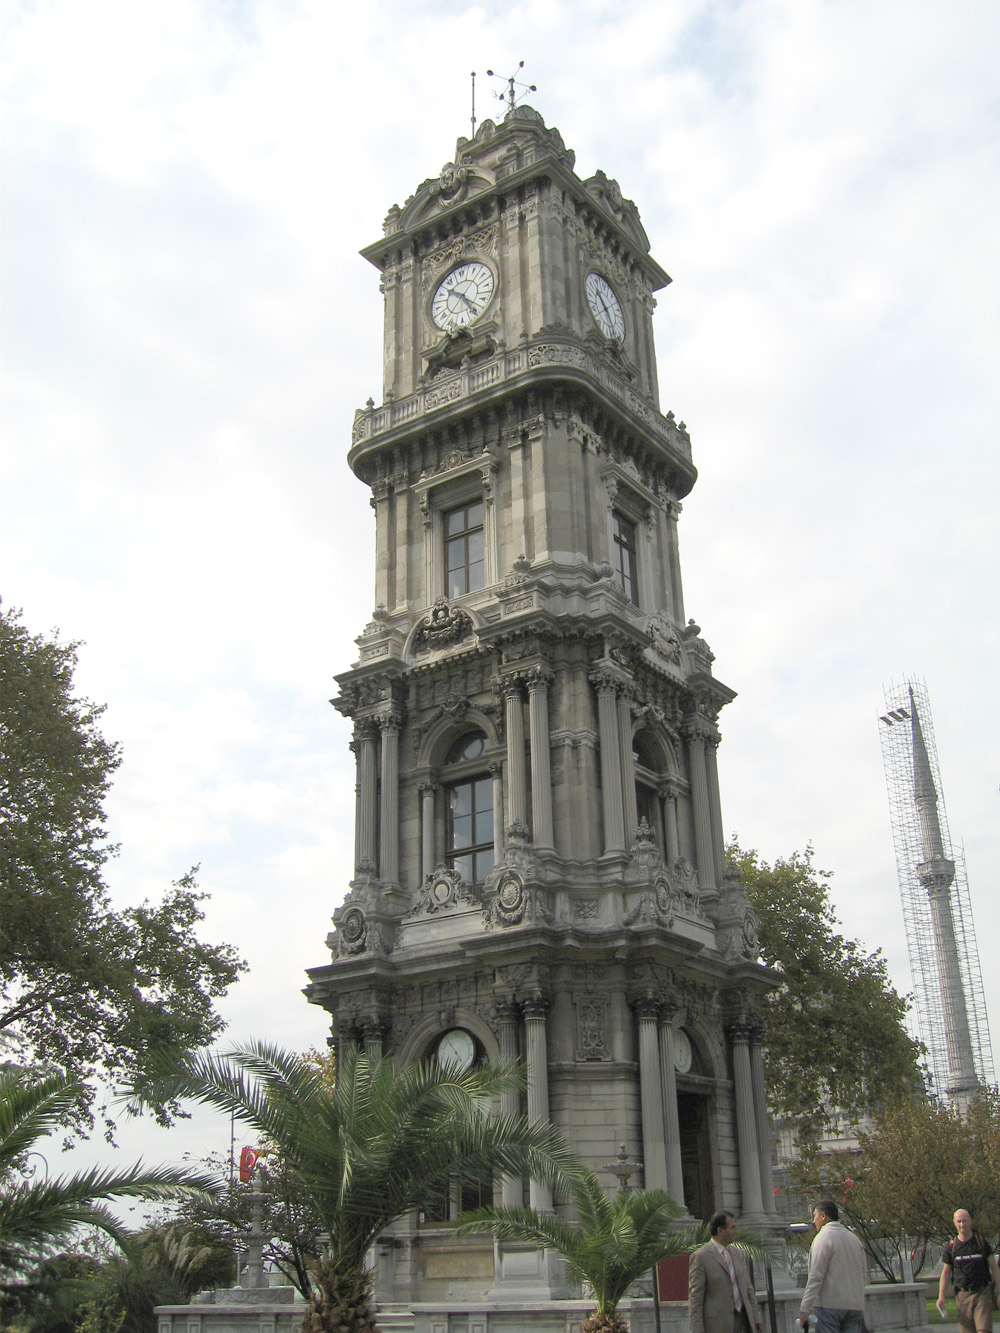 File:Clock Tower Dolmabahce.JPG - Wikimedia Commons